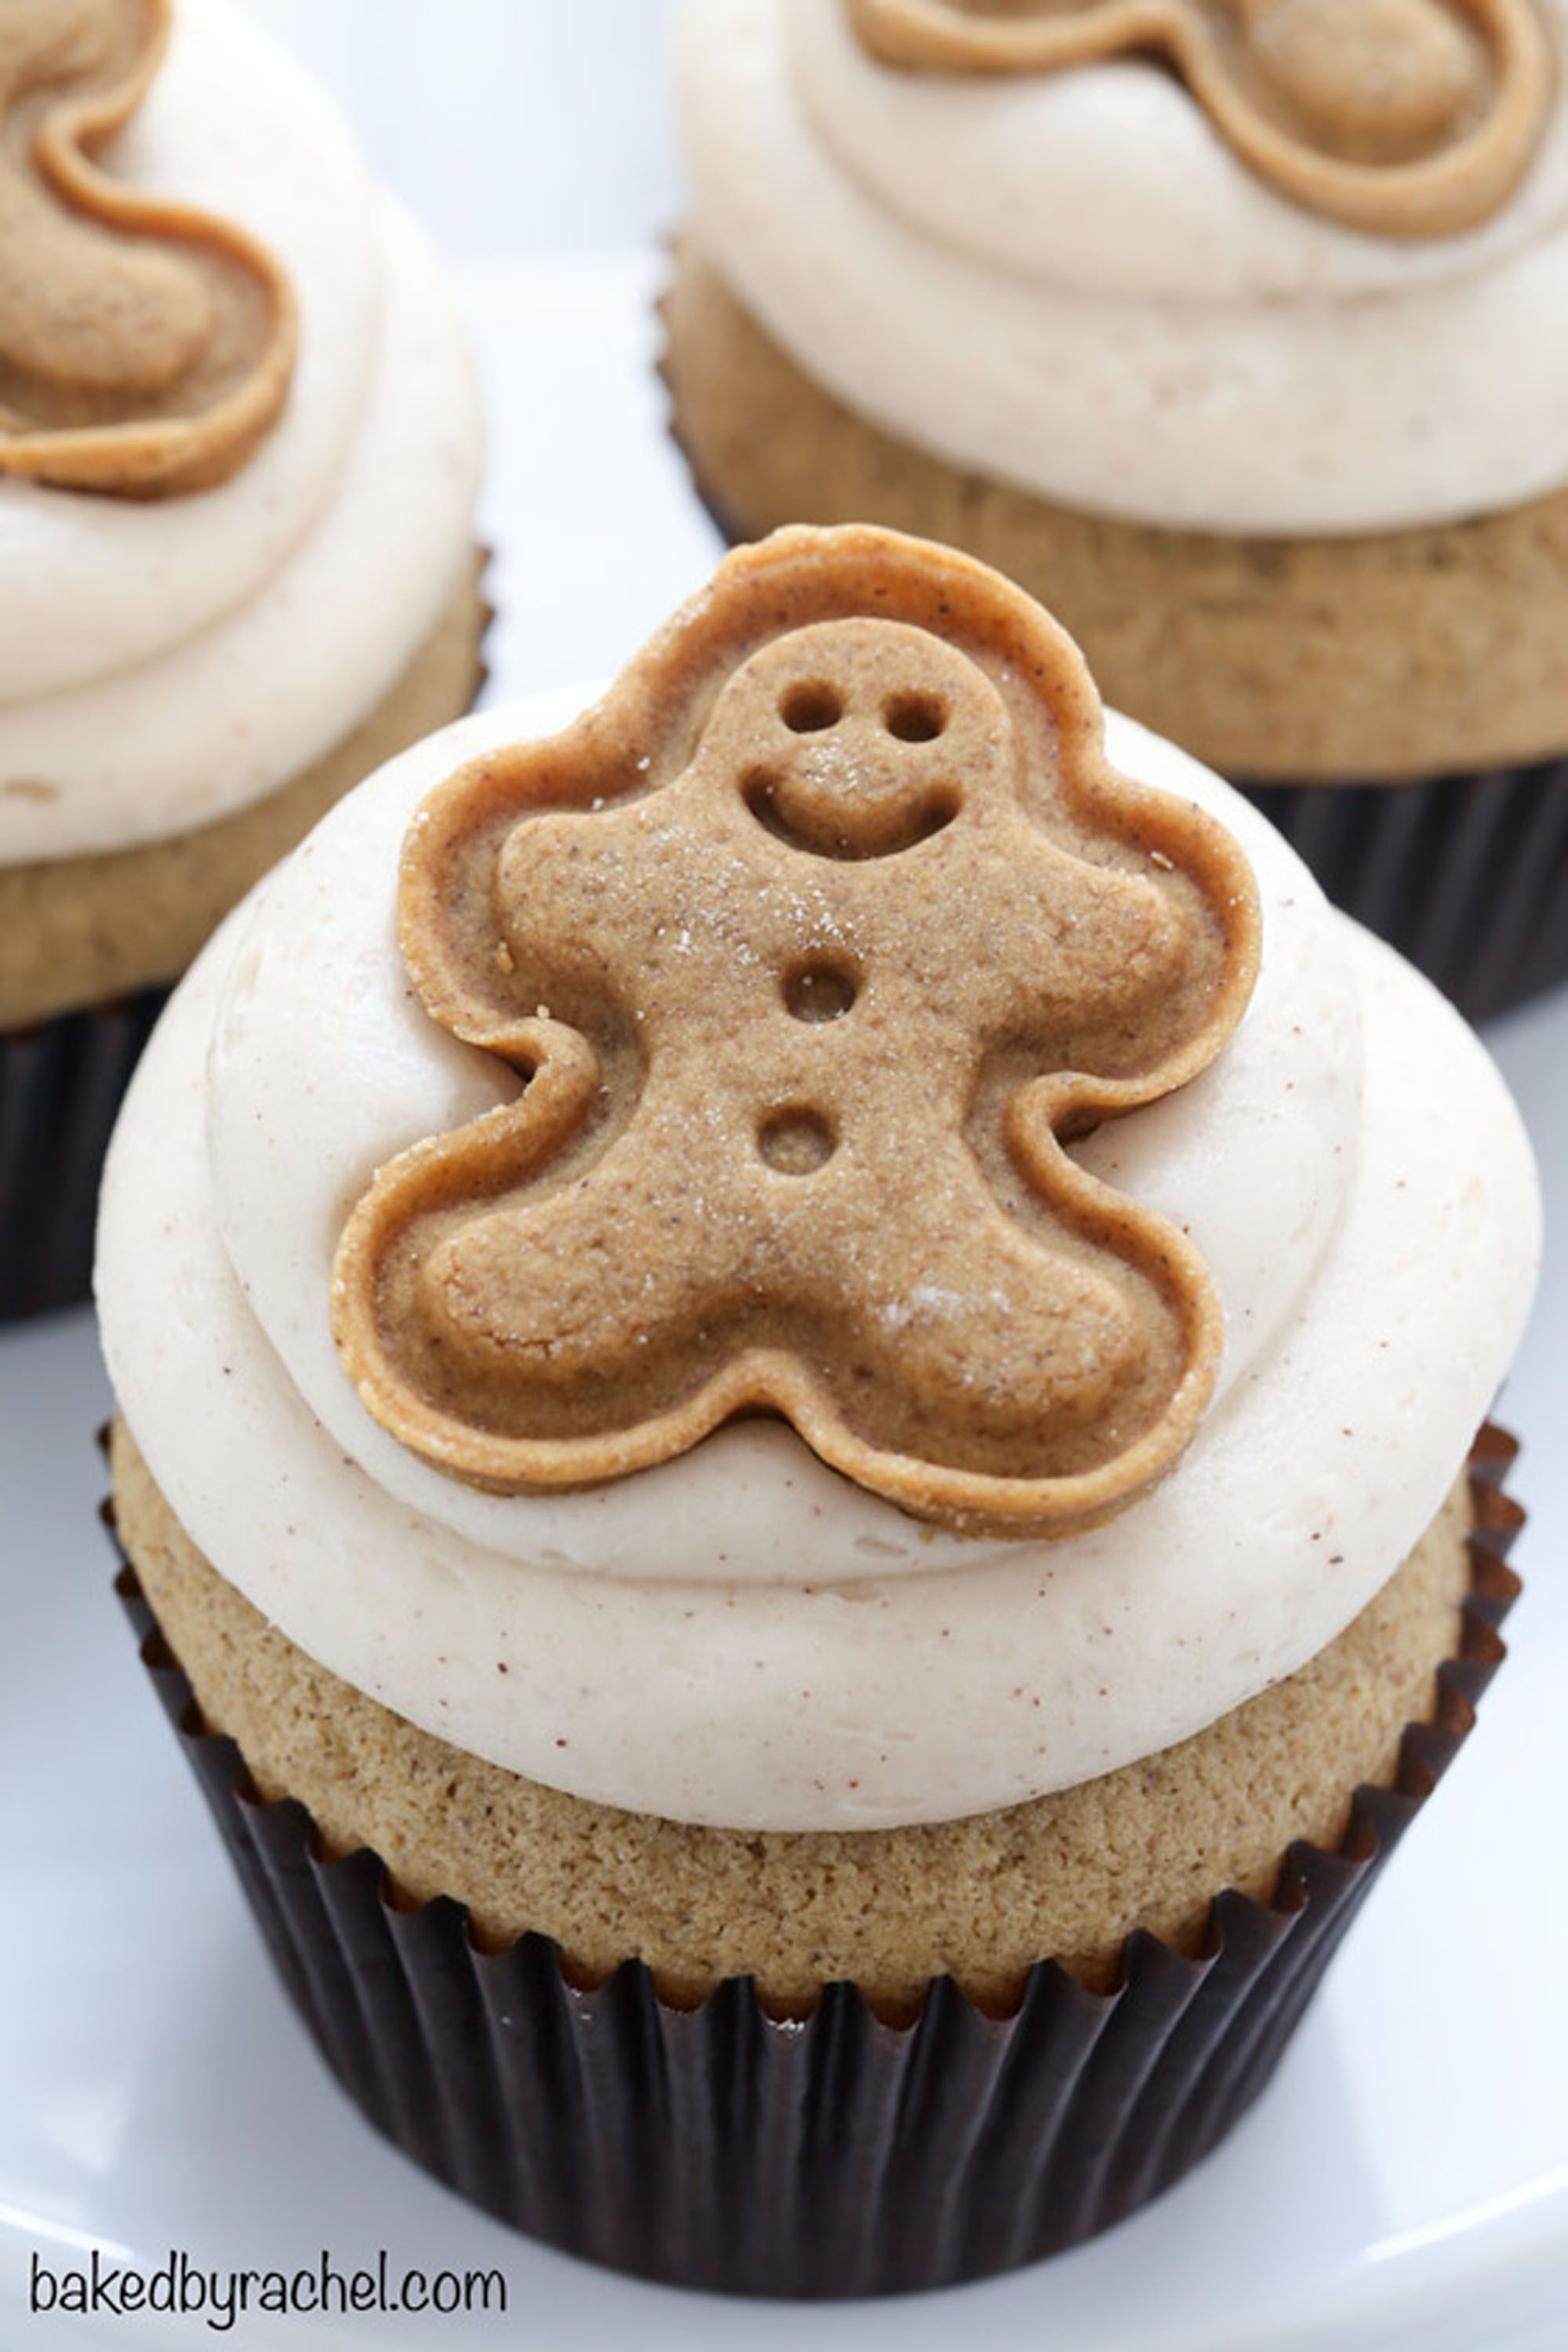 78 Easy Christmas Desserts - Best Recipes and Ideas for Christmas ...